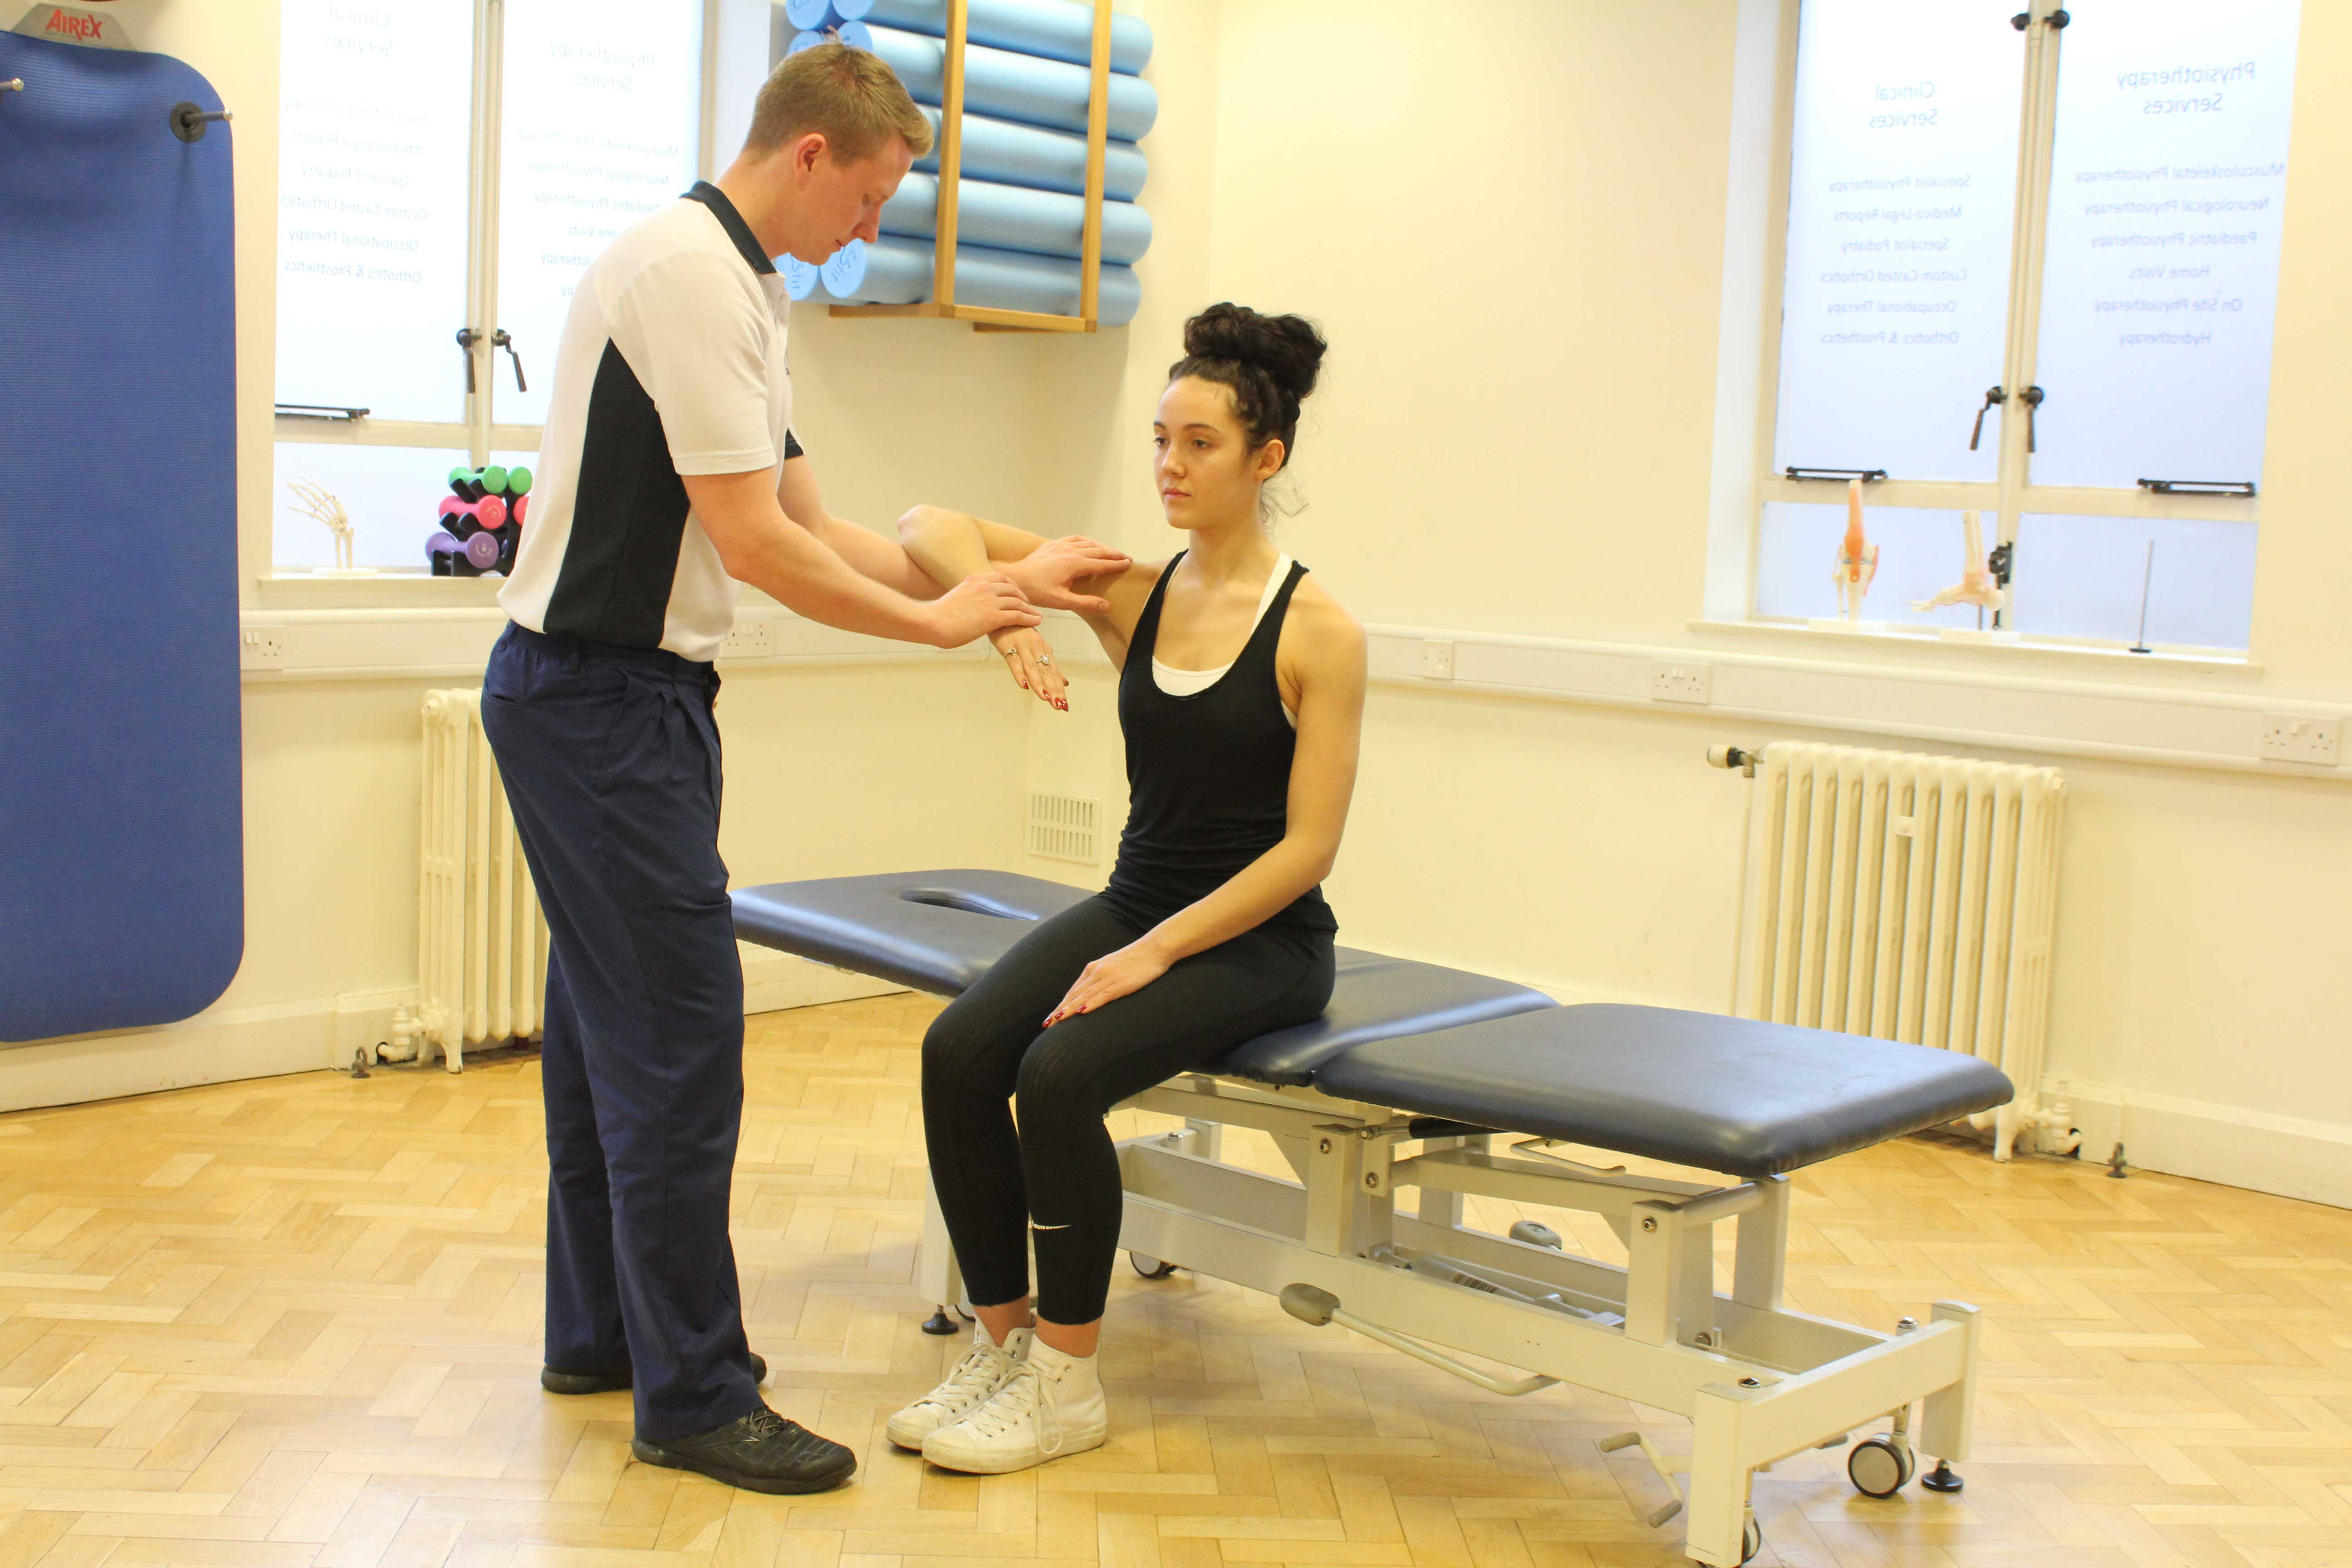 Specilaist musculoskeletal physiotherapst assessing a shoulder injury